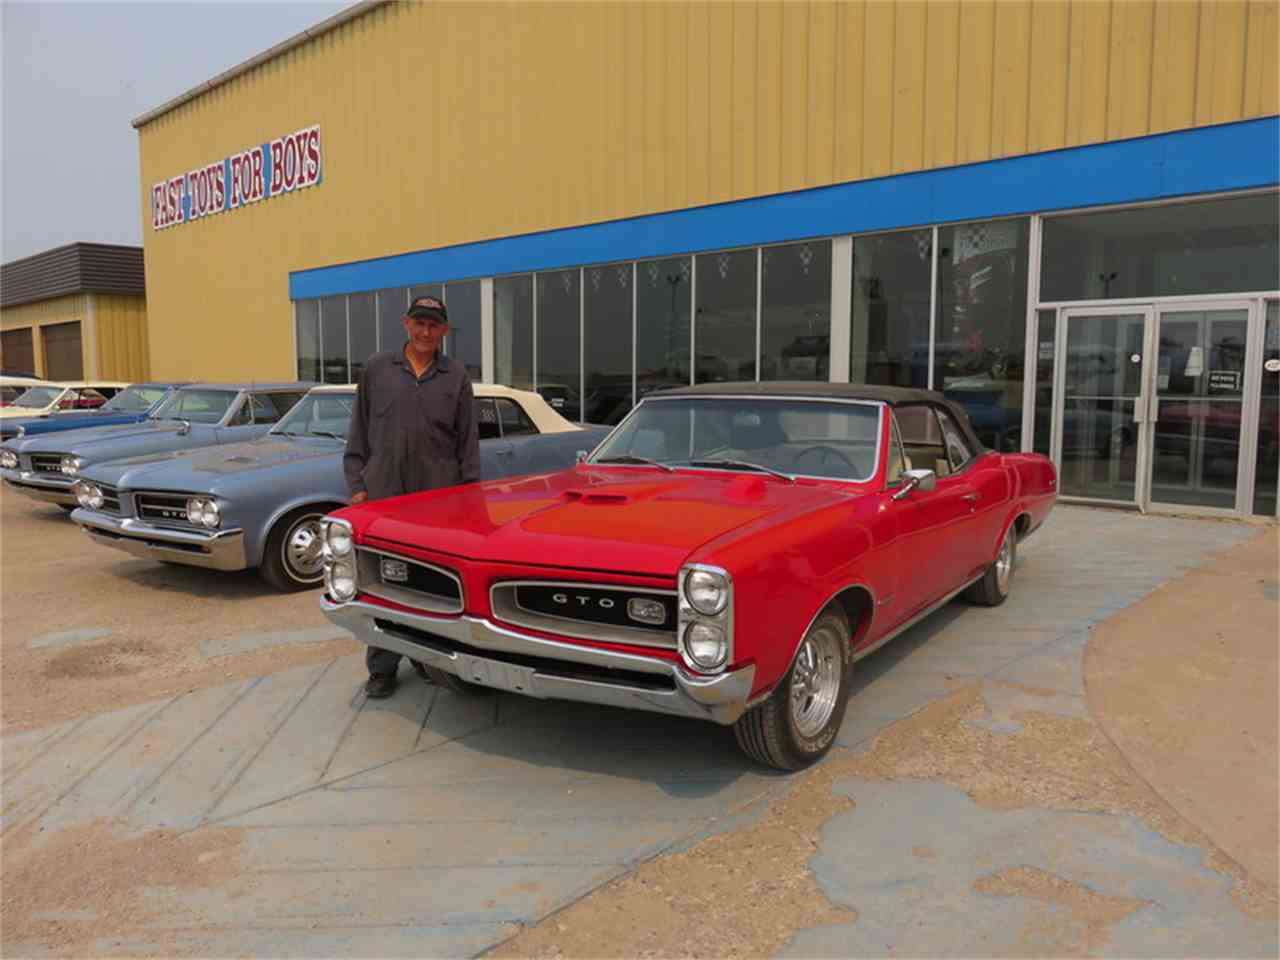 Large Picture of Classic '66 Pontiac Tempest Auction Vehicle Offered by Fast Toys For Boys - H6CW